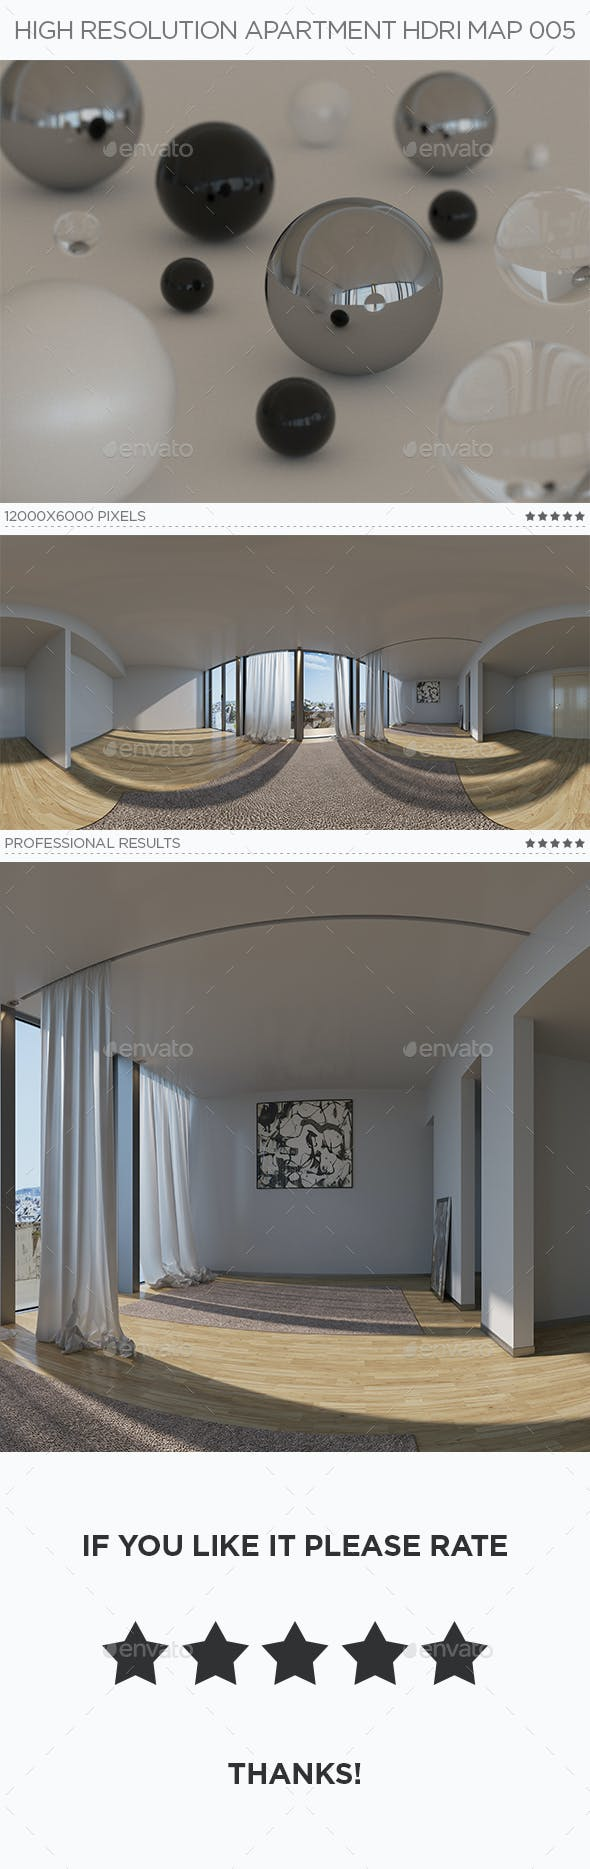 High Resolution Apartment HDRi Map 005 - 3DOcean Item for Sale